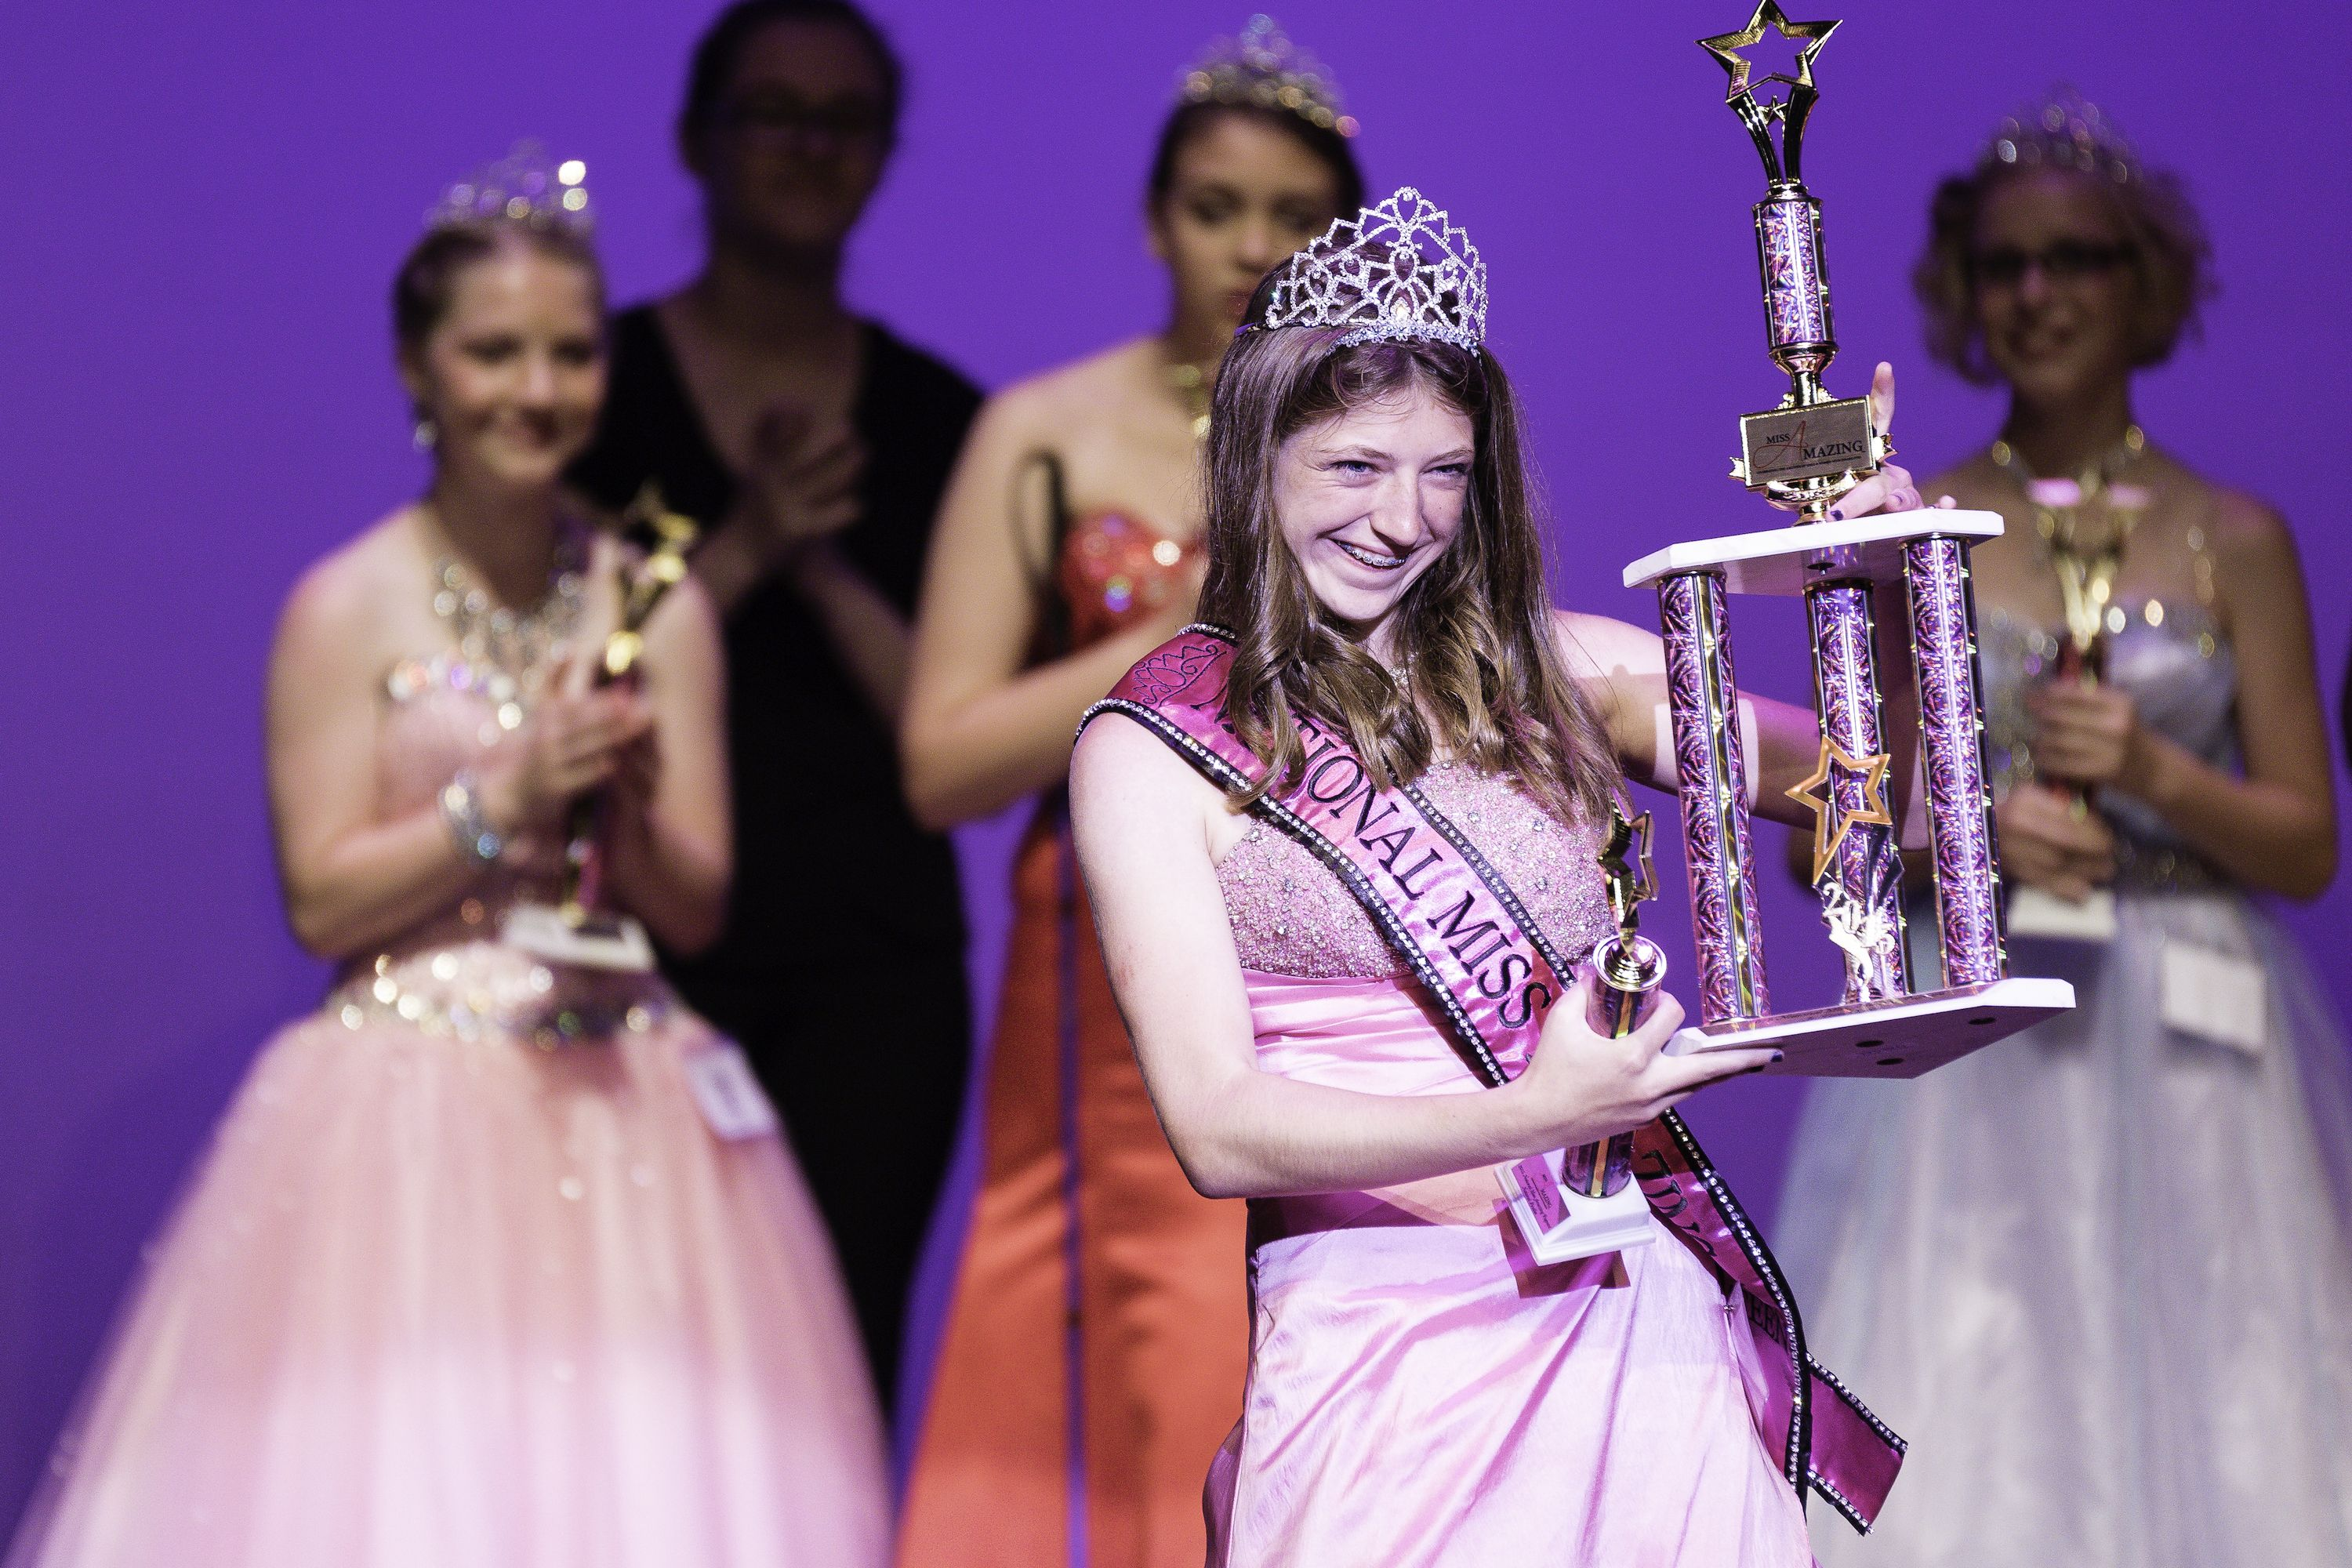 Women and girls shine at unique beauty pageant